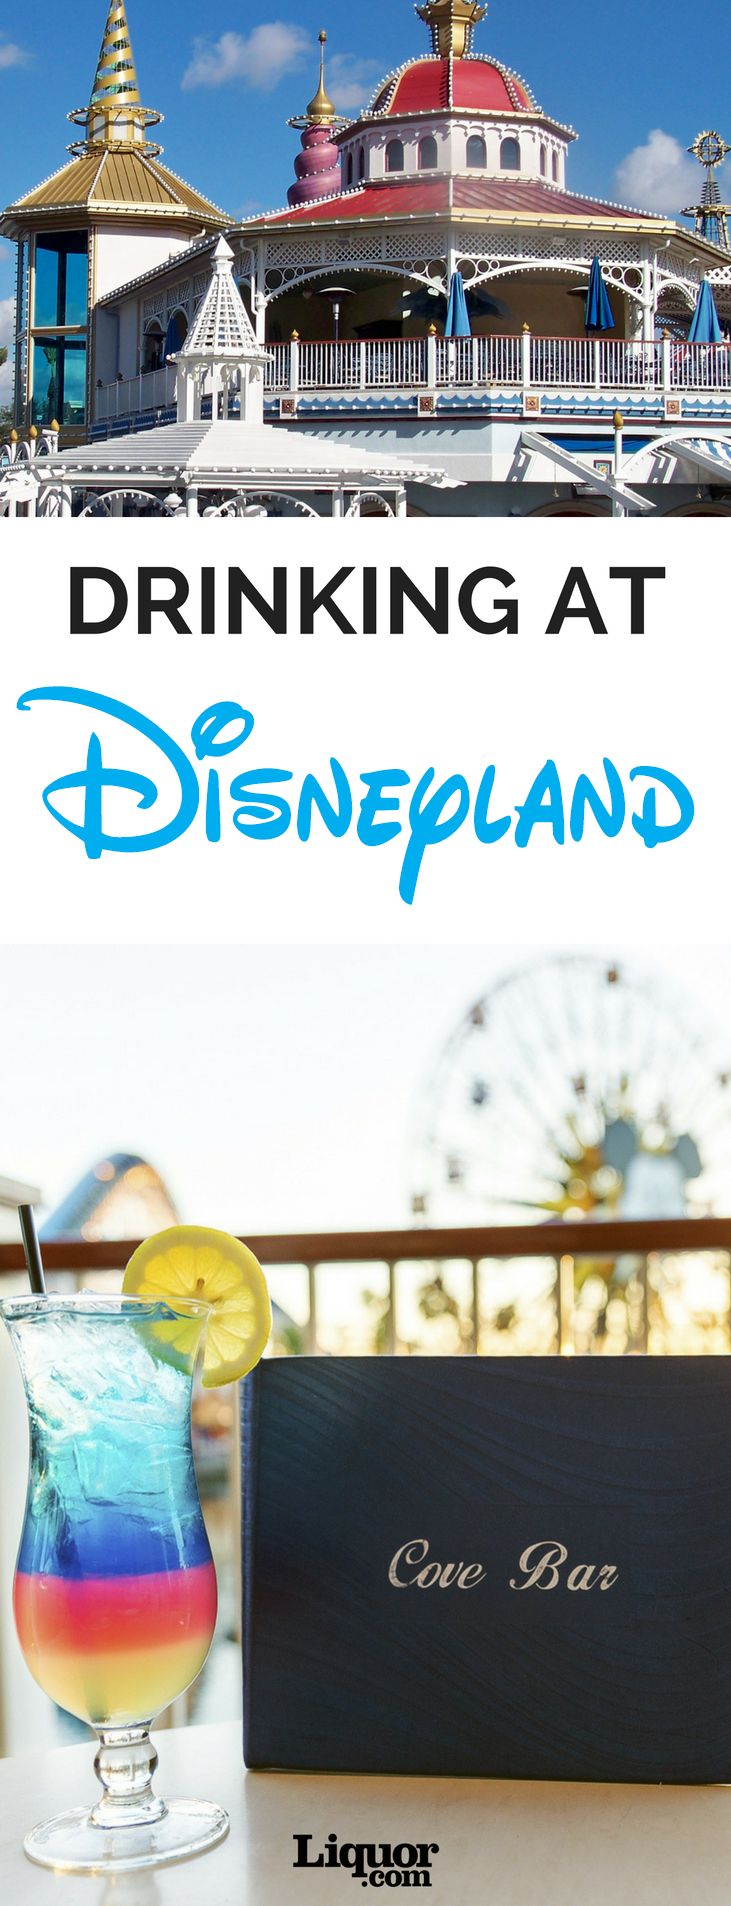 Whether you're planning an adult Disneyland adventure or a quick escape from the maddening maze of ride lines, it's good to know where to find the best drinks at the Happiest Place on Earth. You still can't drink #alcohol inside Disneyland Park itself—at least not without a Club 33 membership—but around the #Disneyland Resort, you'll find all manner of grown-up refreshments.